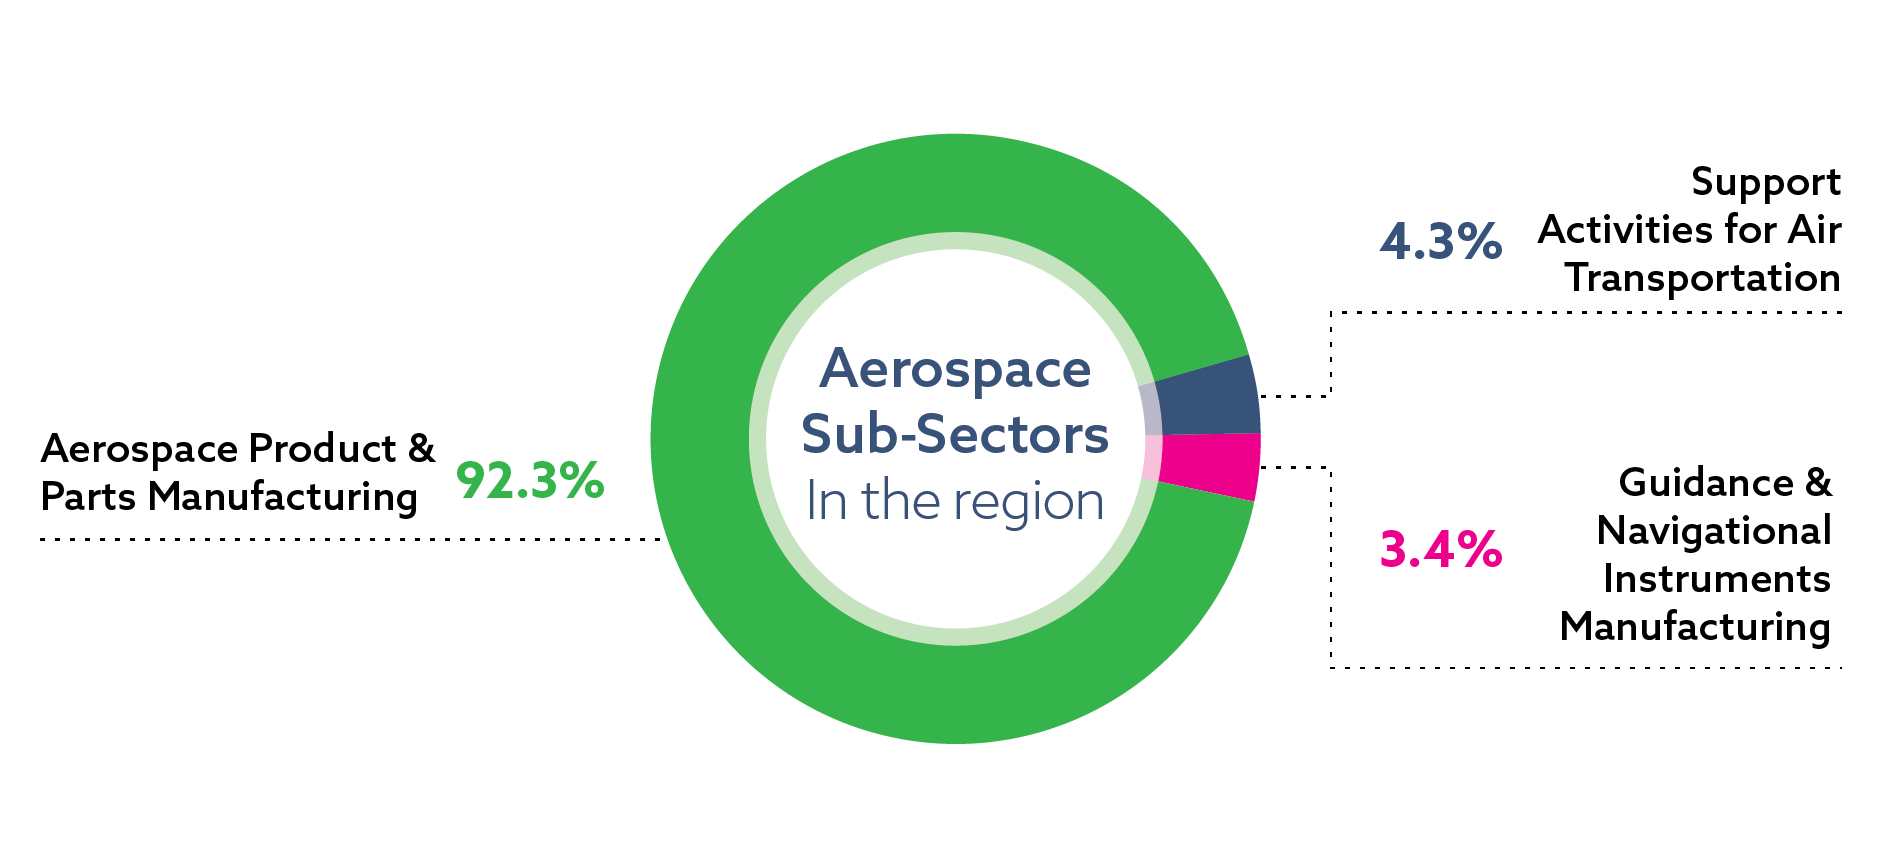 Distribution of jobs in the aerospace sector in the Toronto region, by sub-sector: aerospace product and parts manufacturing 92.3 percent of sector jobs; support activities for air transportation 4.3 percent of sector jobs; guidance and navigational instruments manufacturing 3.4 percent of sector jobs